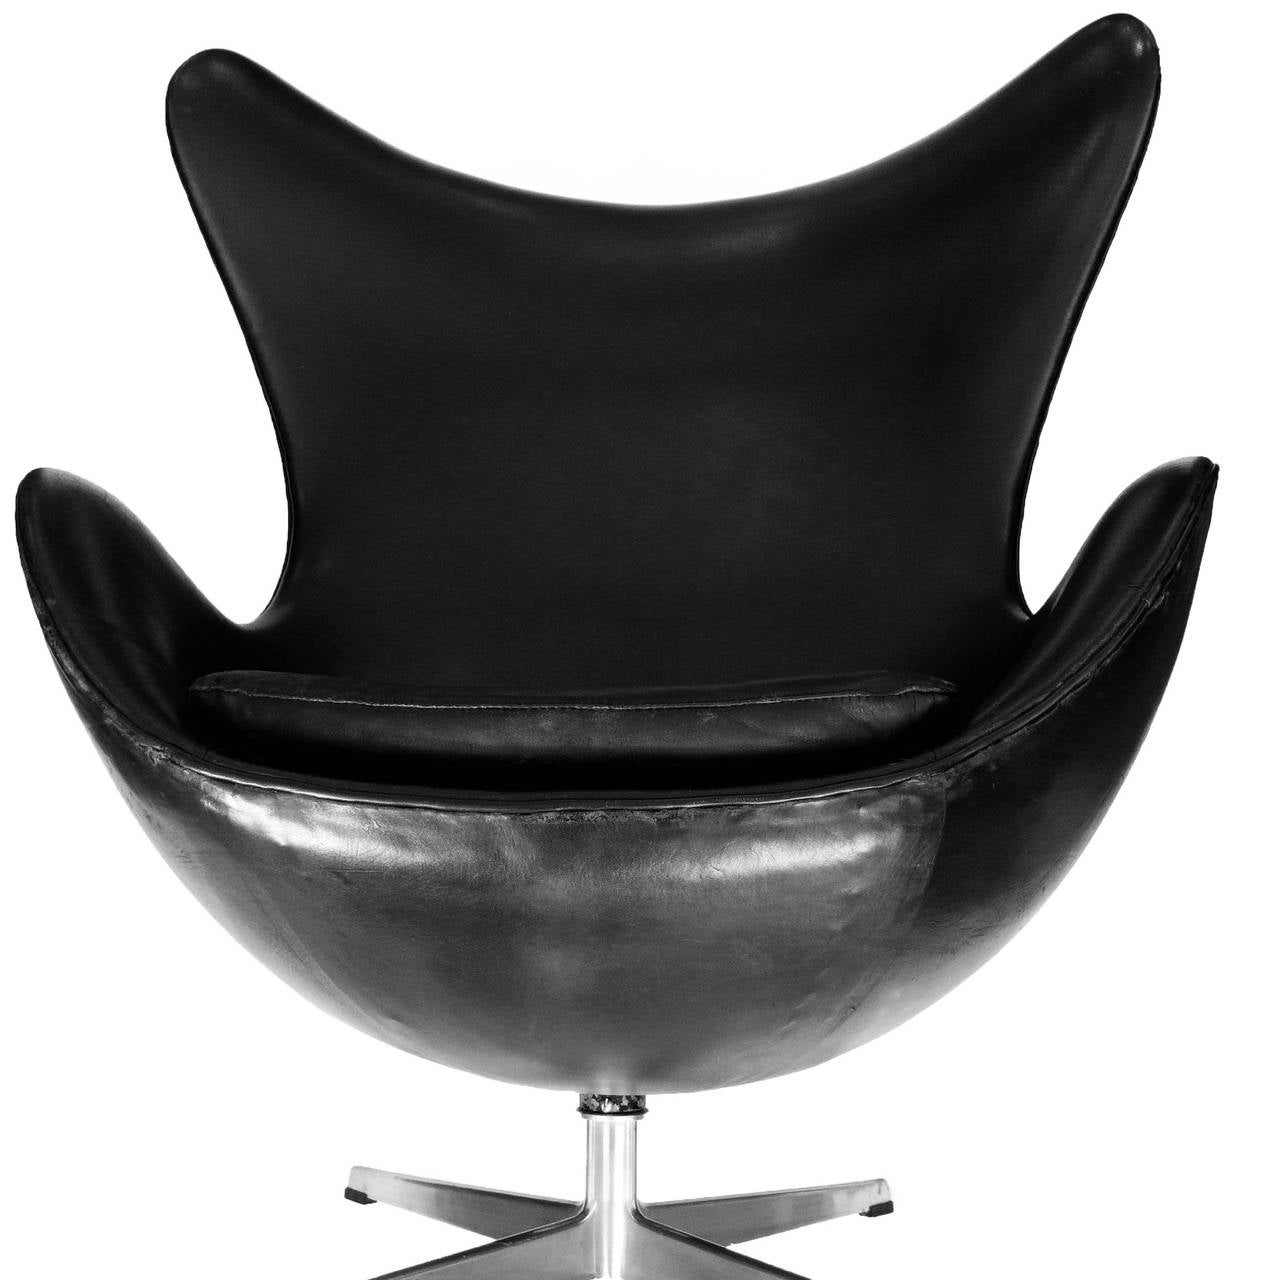 Early Egg Chair and Ottoman by Arne Jacobsen with Original Black Leather 2